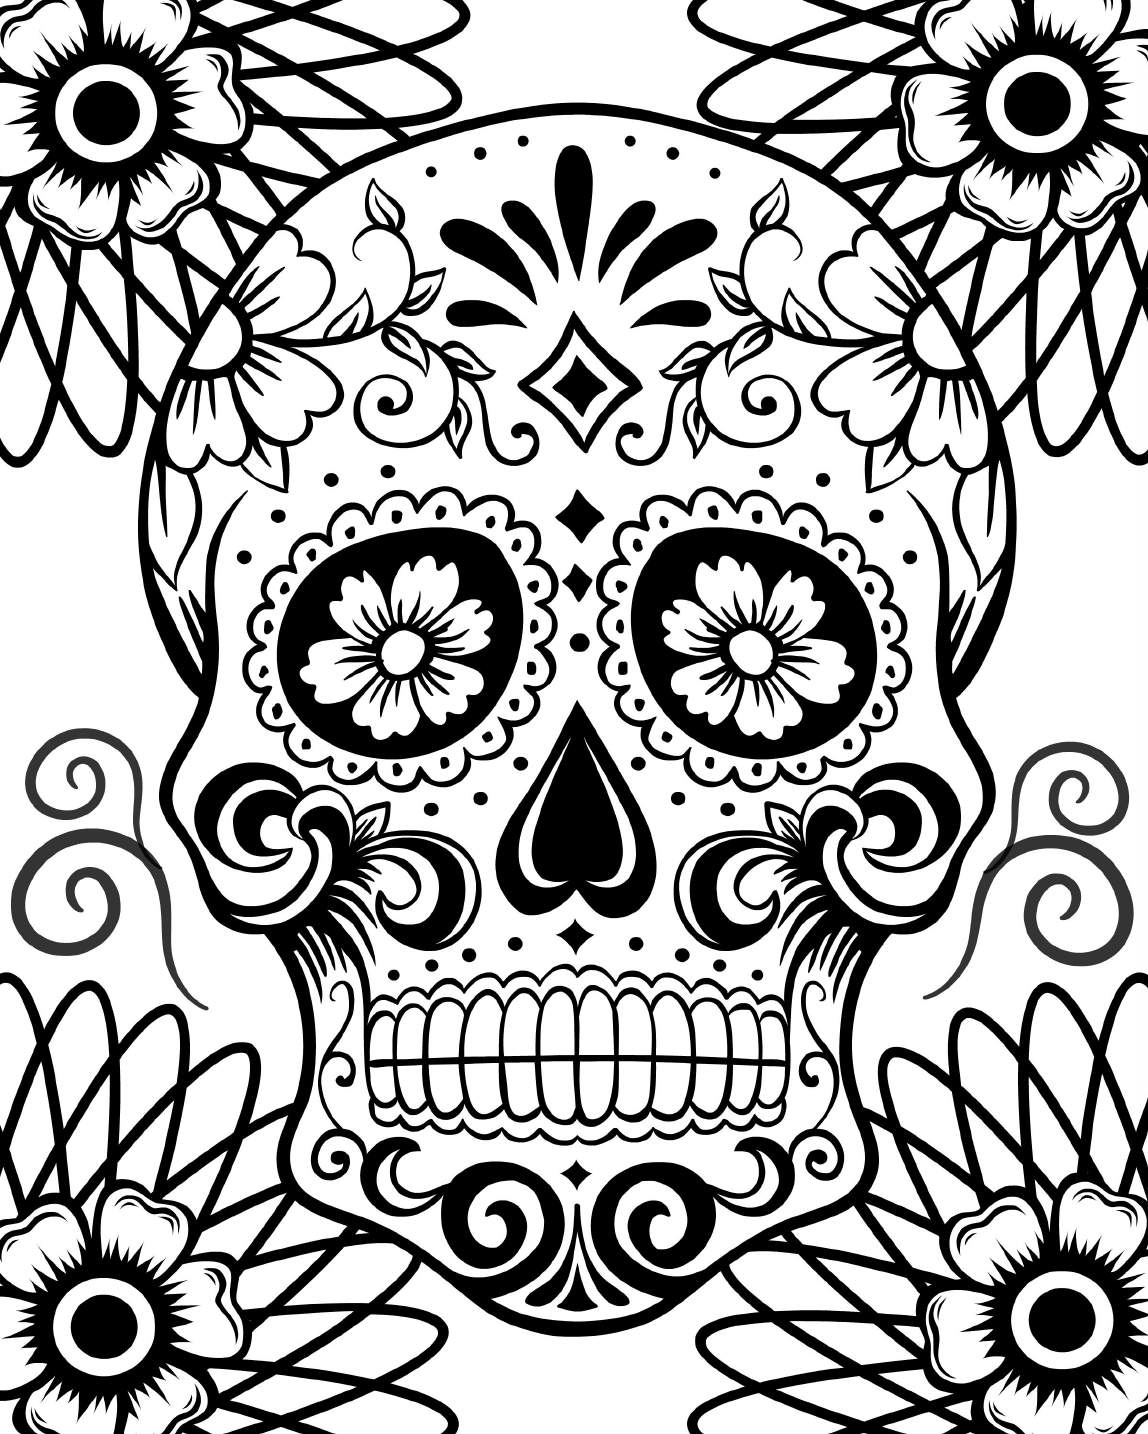 day of the dead skull coloring page free printable day of the dead coloring pages best day coloring dead skull the of page